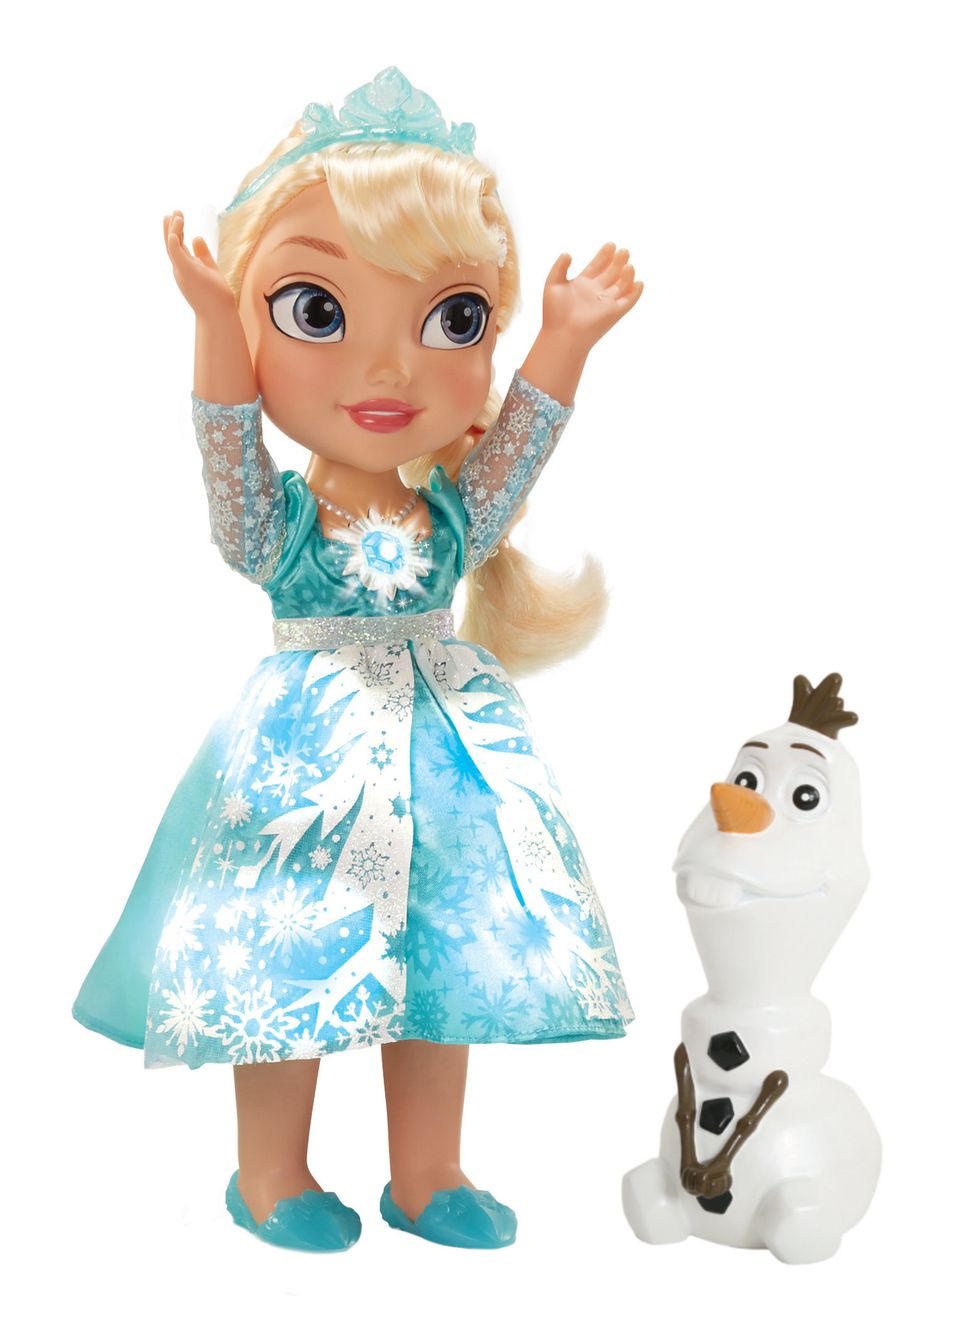 With the touch of her magical snowflake necklace, hear Elsa talk to her Frozen friends and watch entranced as her dress light